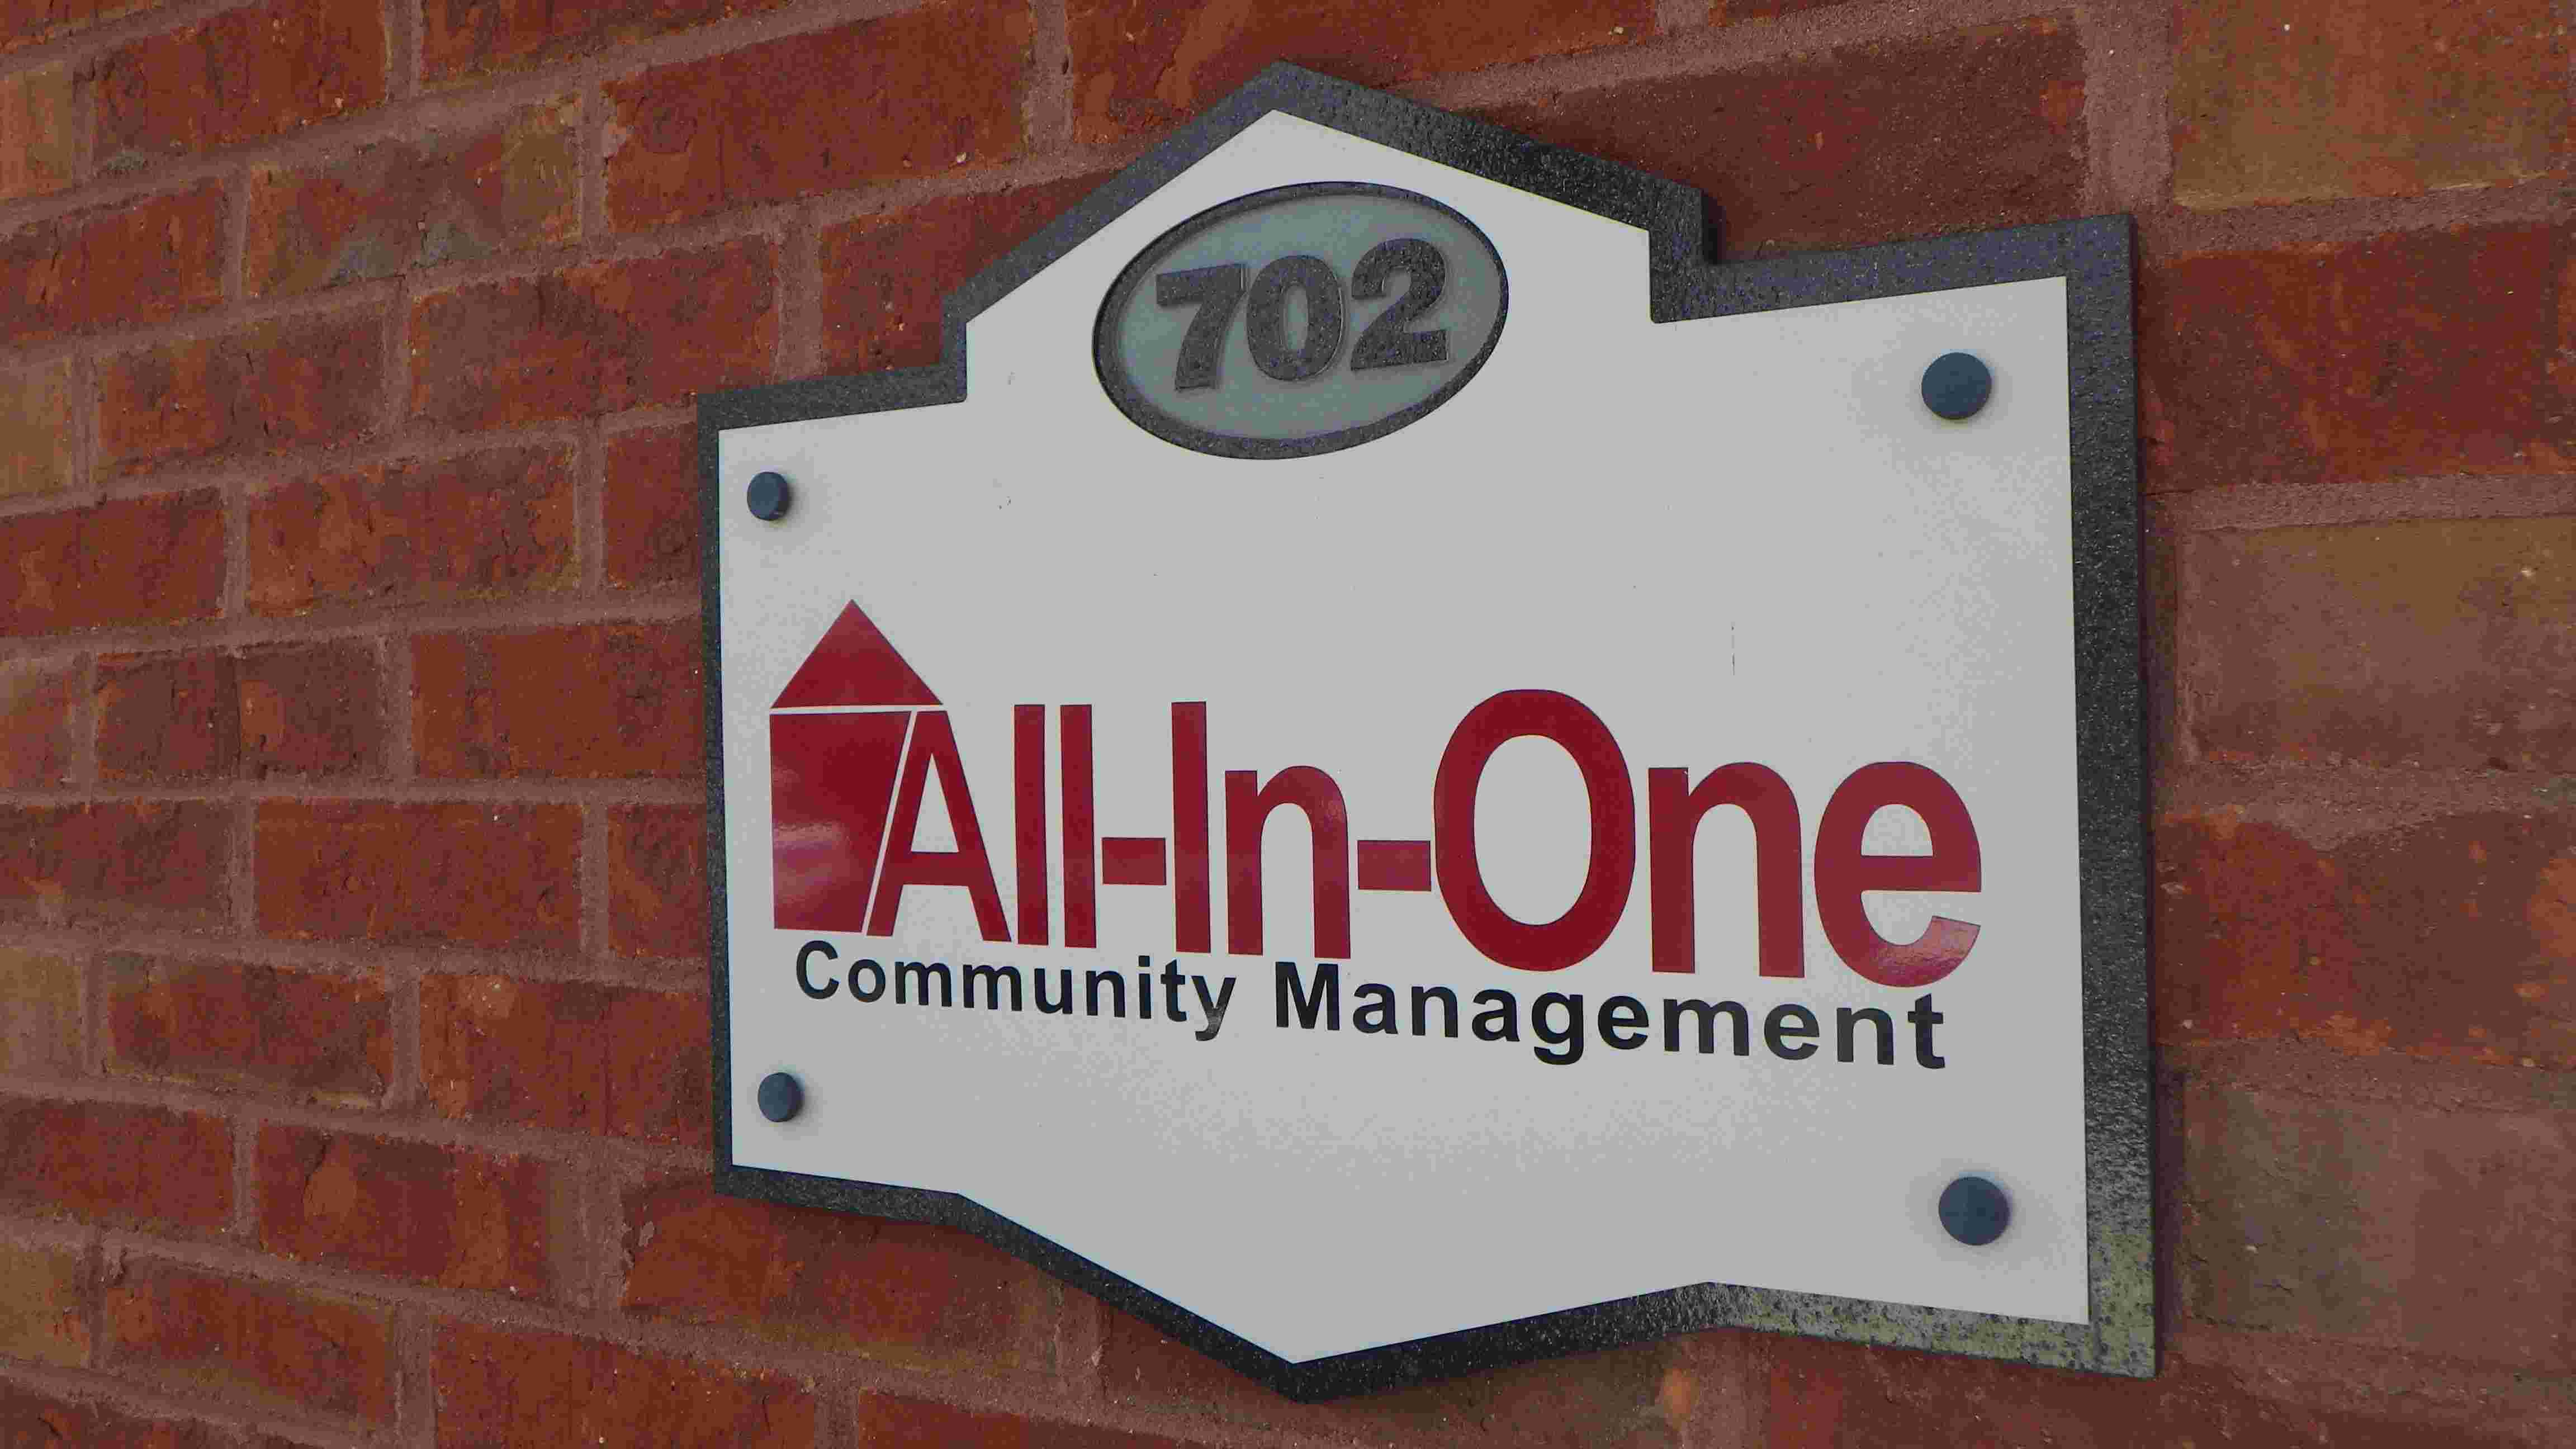 All-In-One Community Management second image